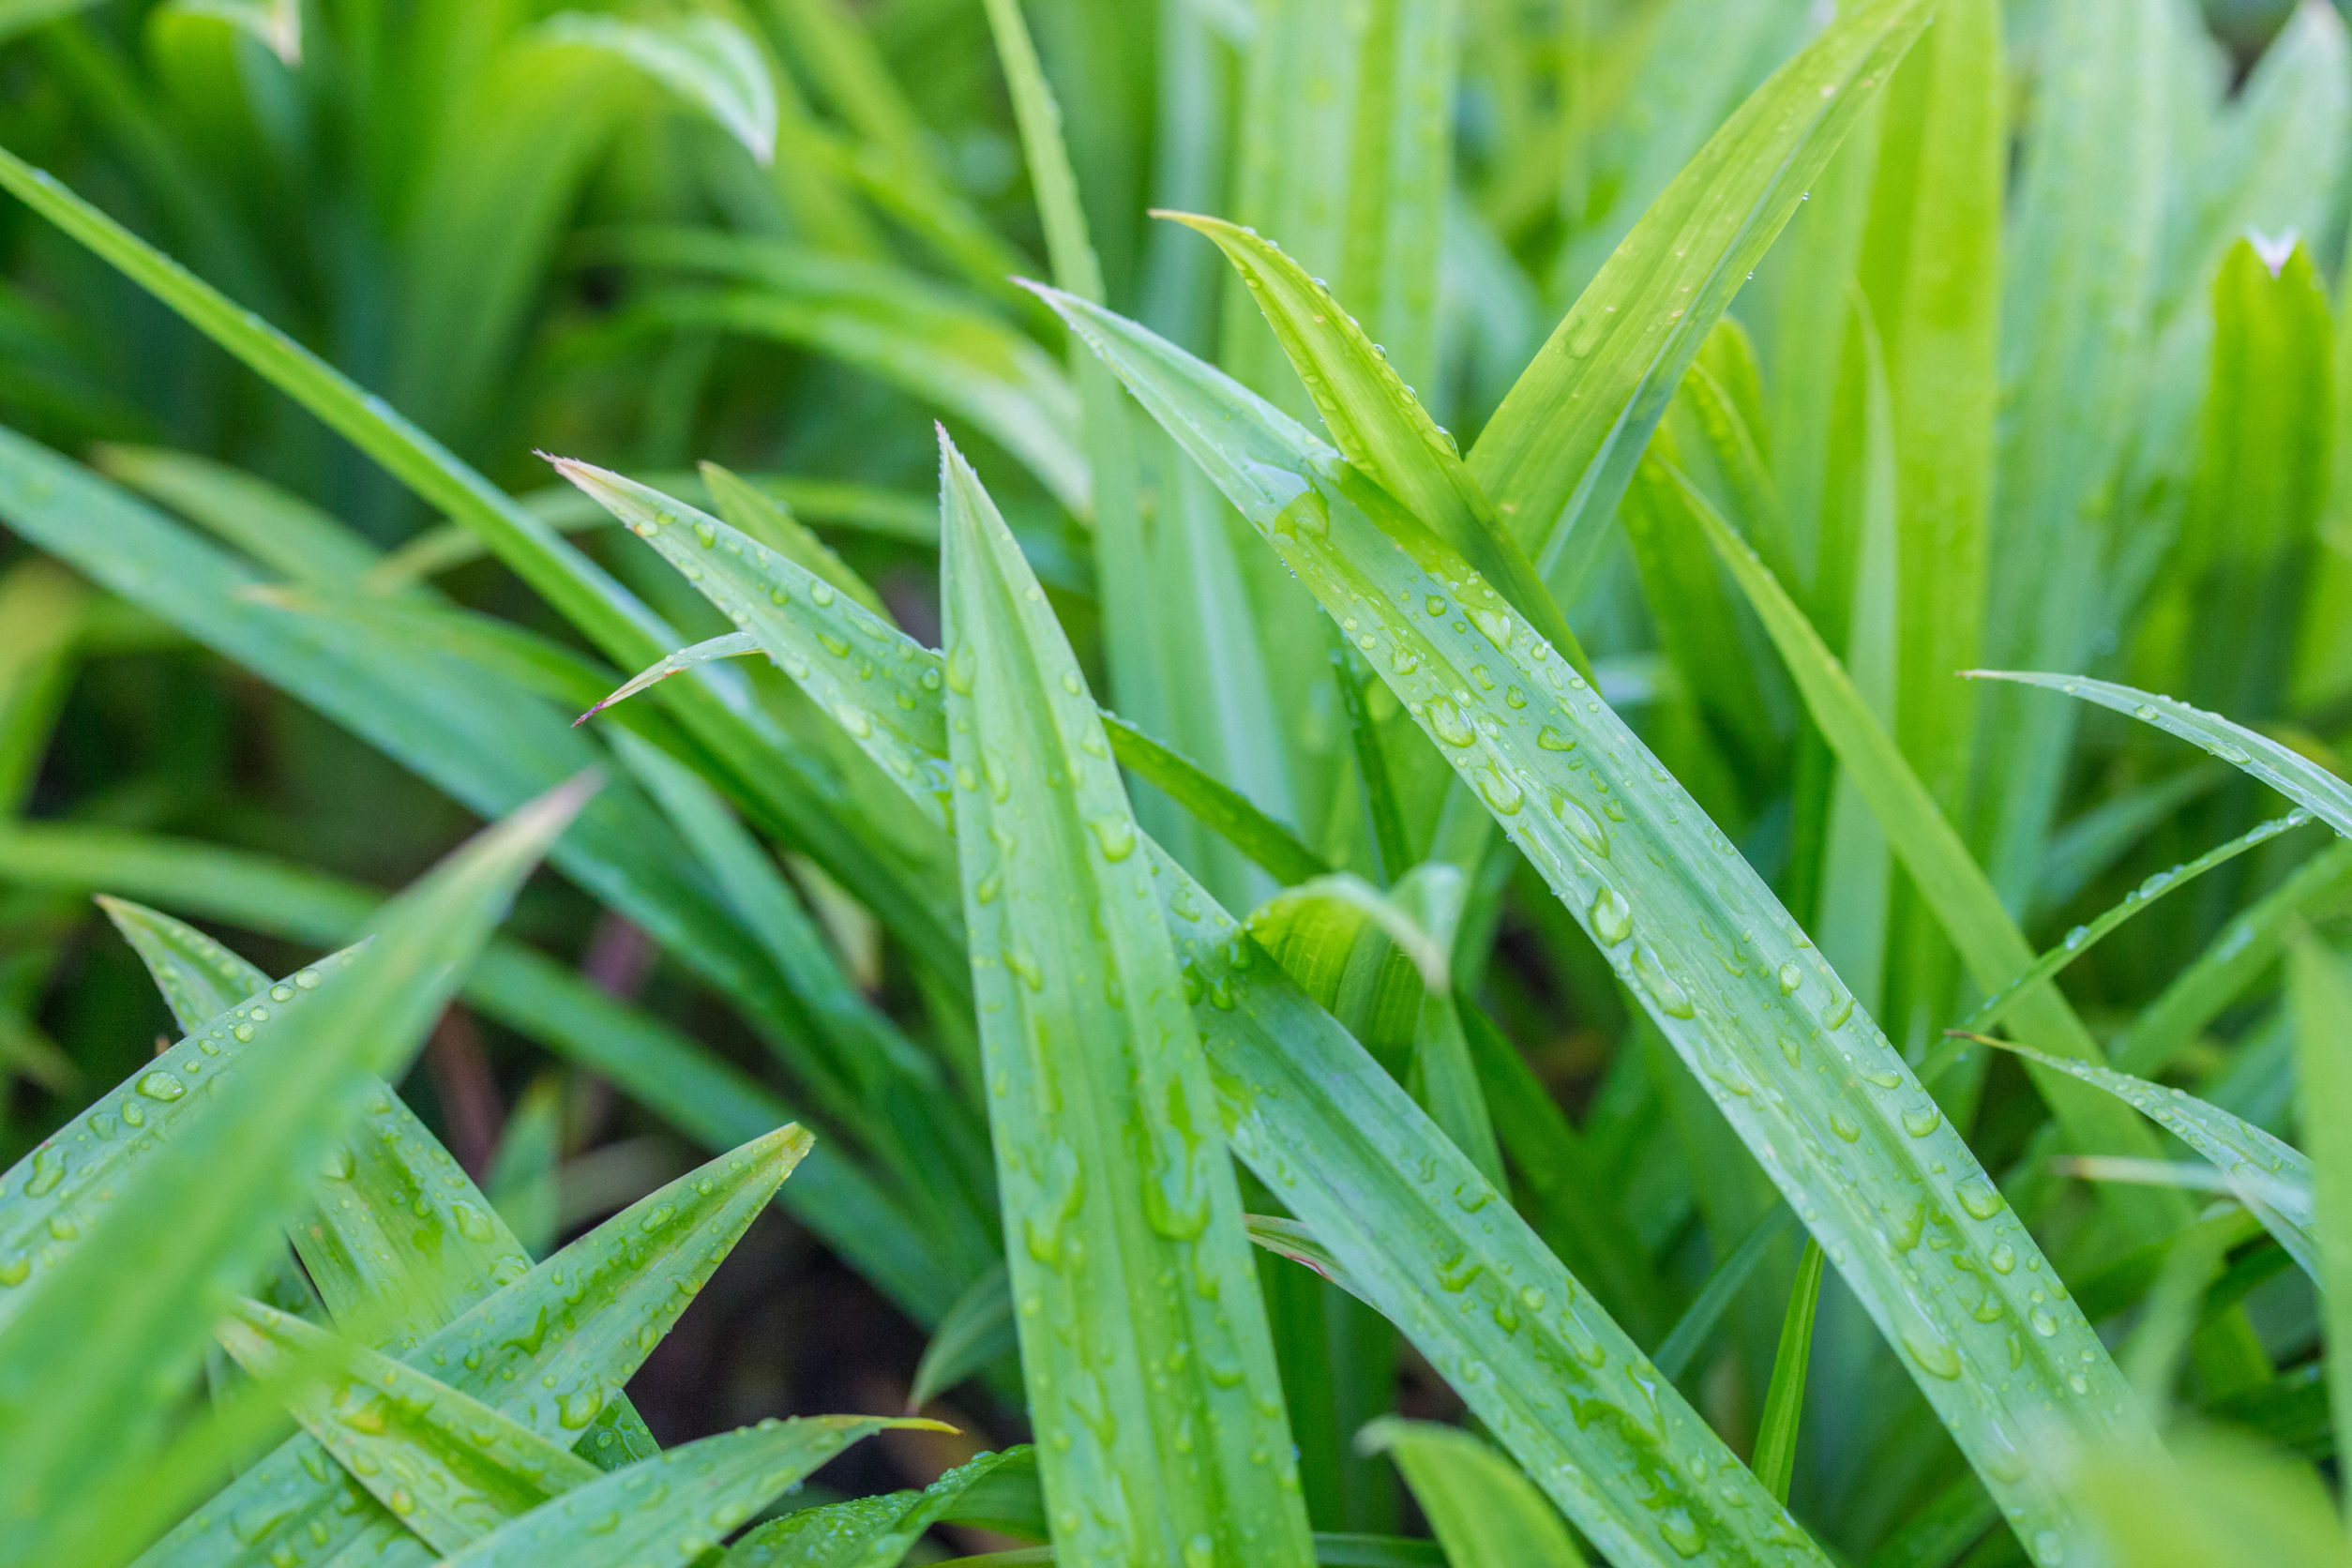 Pandan leaves otherwise known as screwpine leaves is a common garden variety in Malaysia that is non-toxic to cats